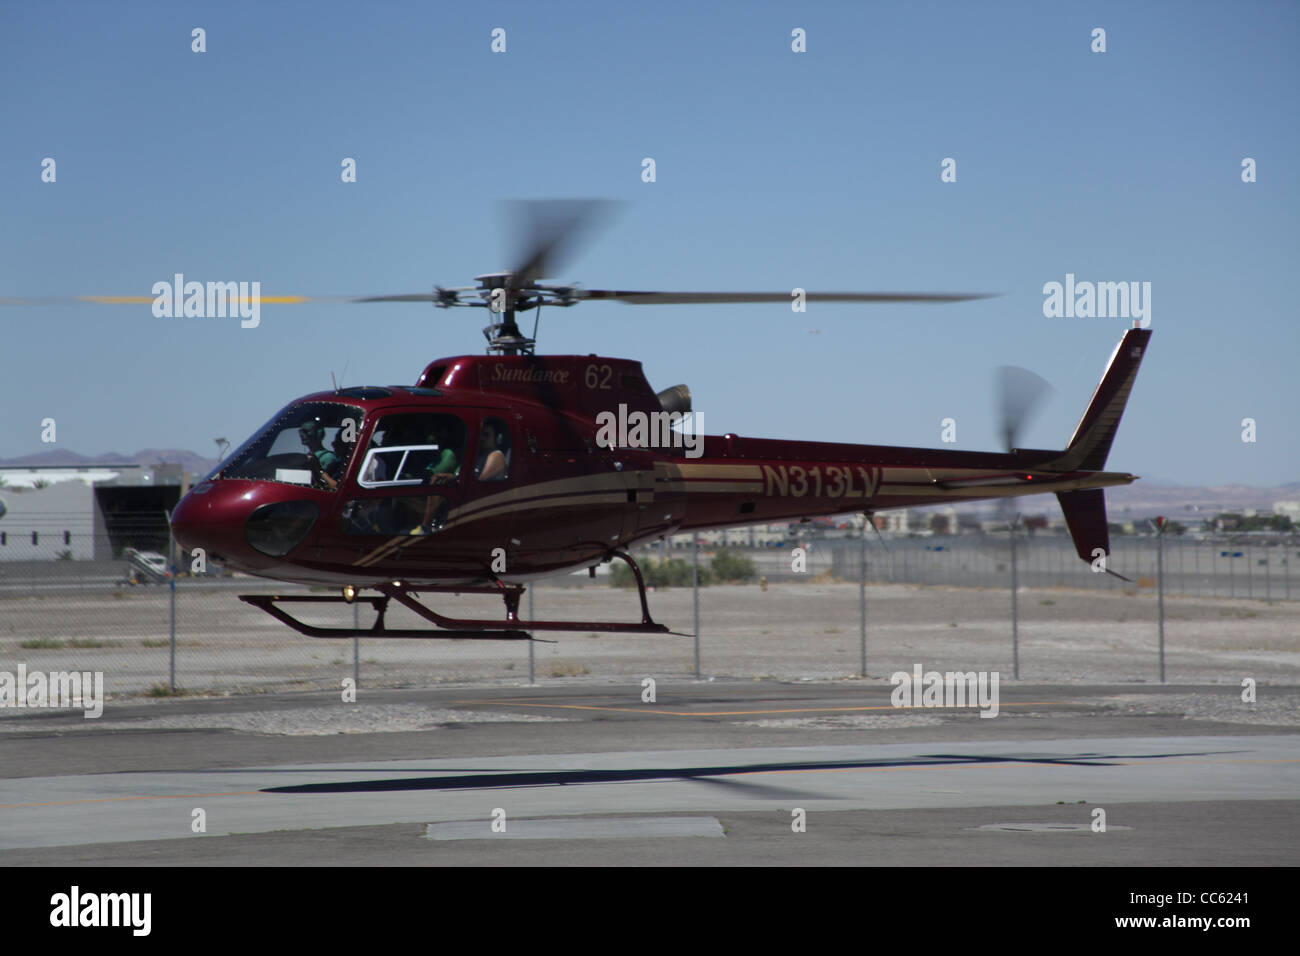 A-Star Helicopter Landing in Las vagas - Stock Image